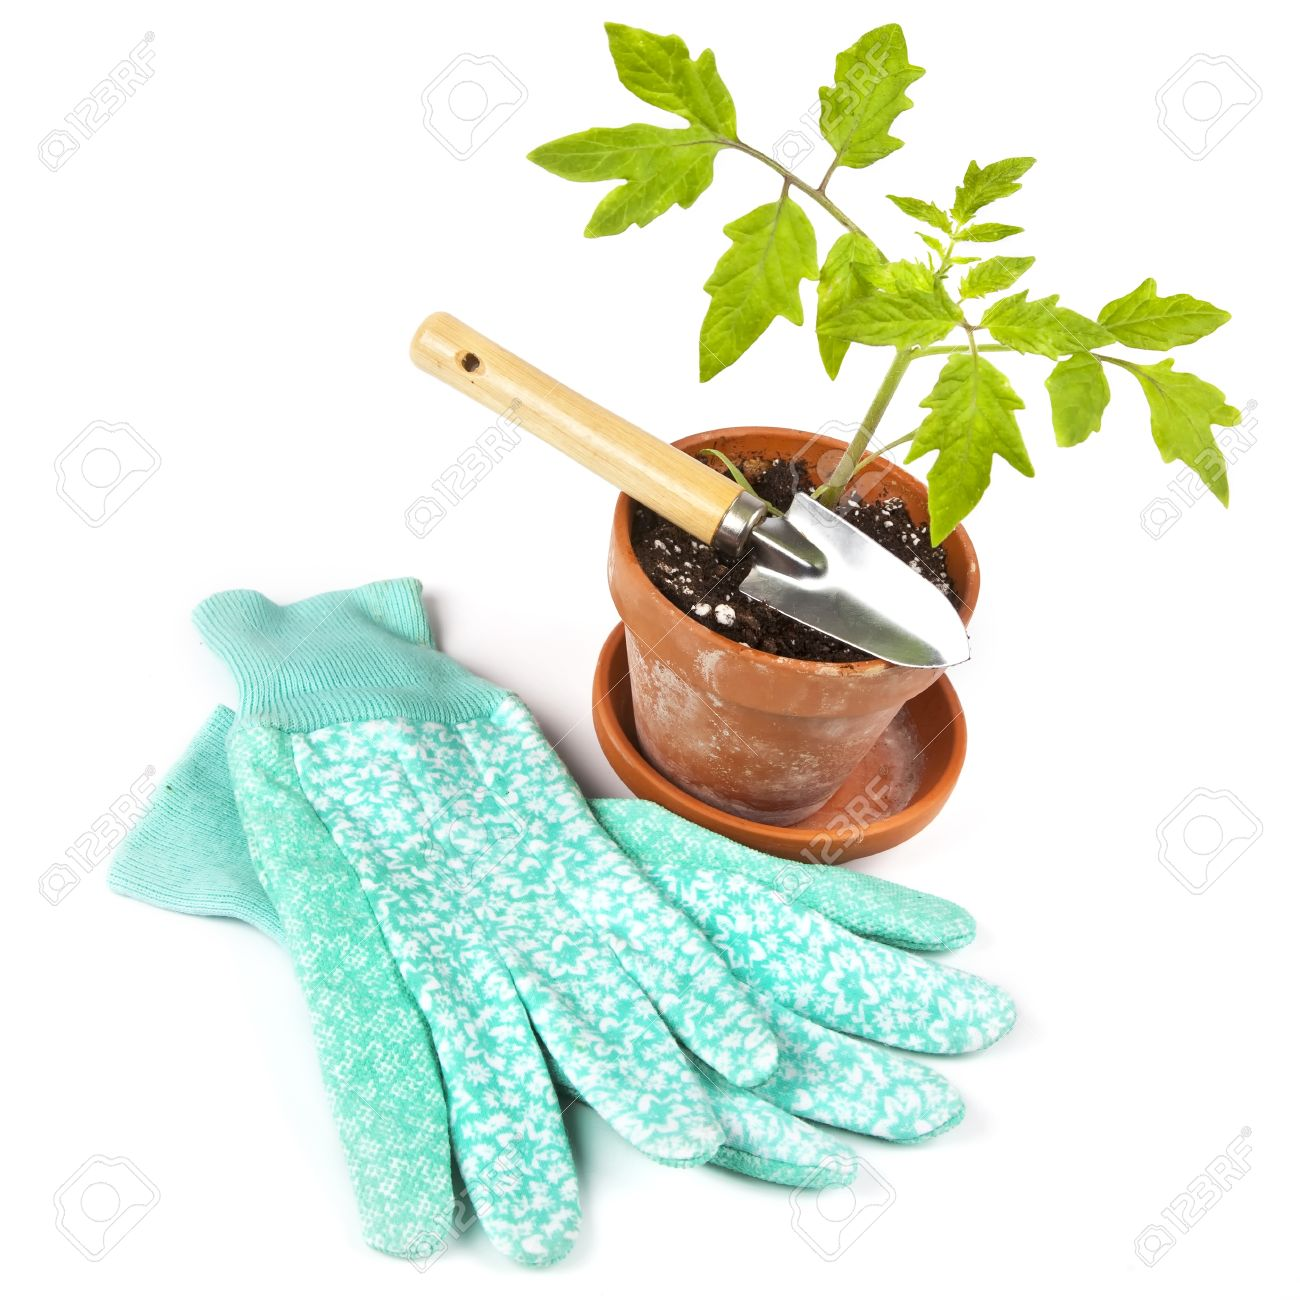 Gardening gloves, a garden trowel and a potted tomato plant ready for planting outside in the garden. Stock Photo - 12711119